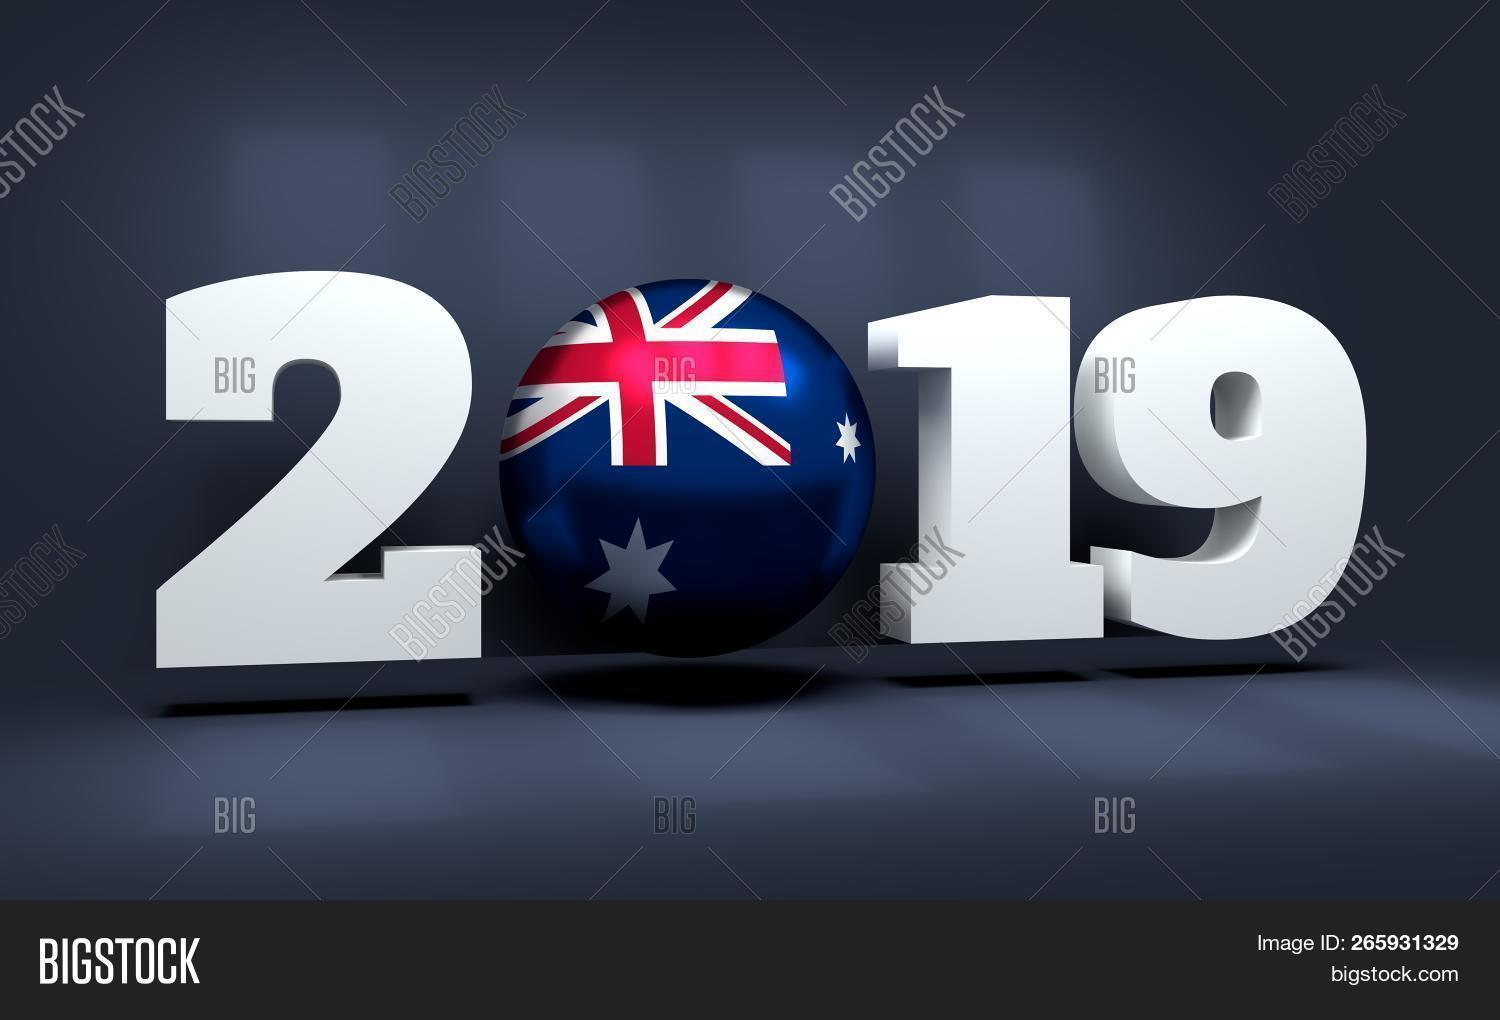 2019,3D,Australia,annual,backdrop,background,banner,beginnings,brochure,calendar,card,celebrate,celebration,christmas,congratulation,cover,date,december,decoration,eve,event,festival,festive,flag,flyer,font,gift,greeting,happy,holiday,invitation,merry,modern,national,new,number,party,poster,rendering,season,seasonal,sign,state,symbol,text,time,winter,xmas,year